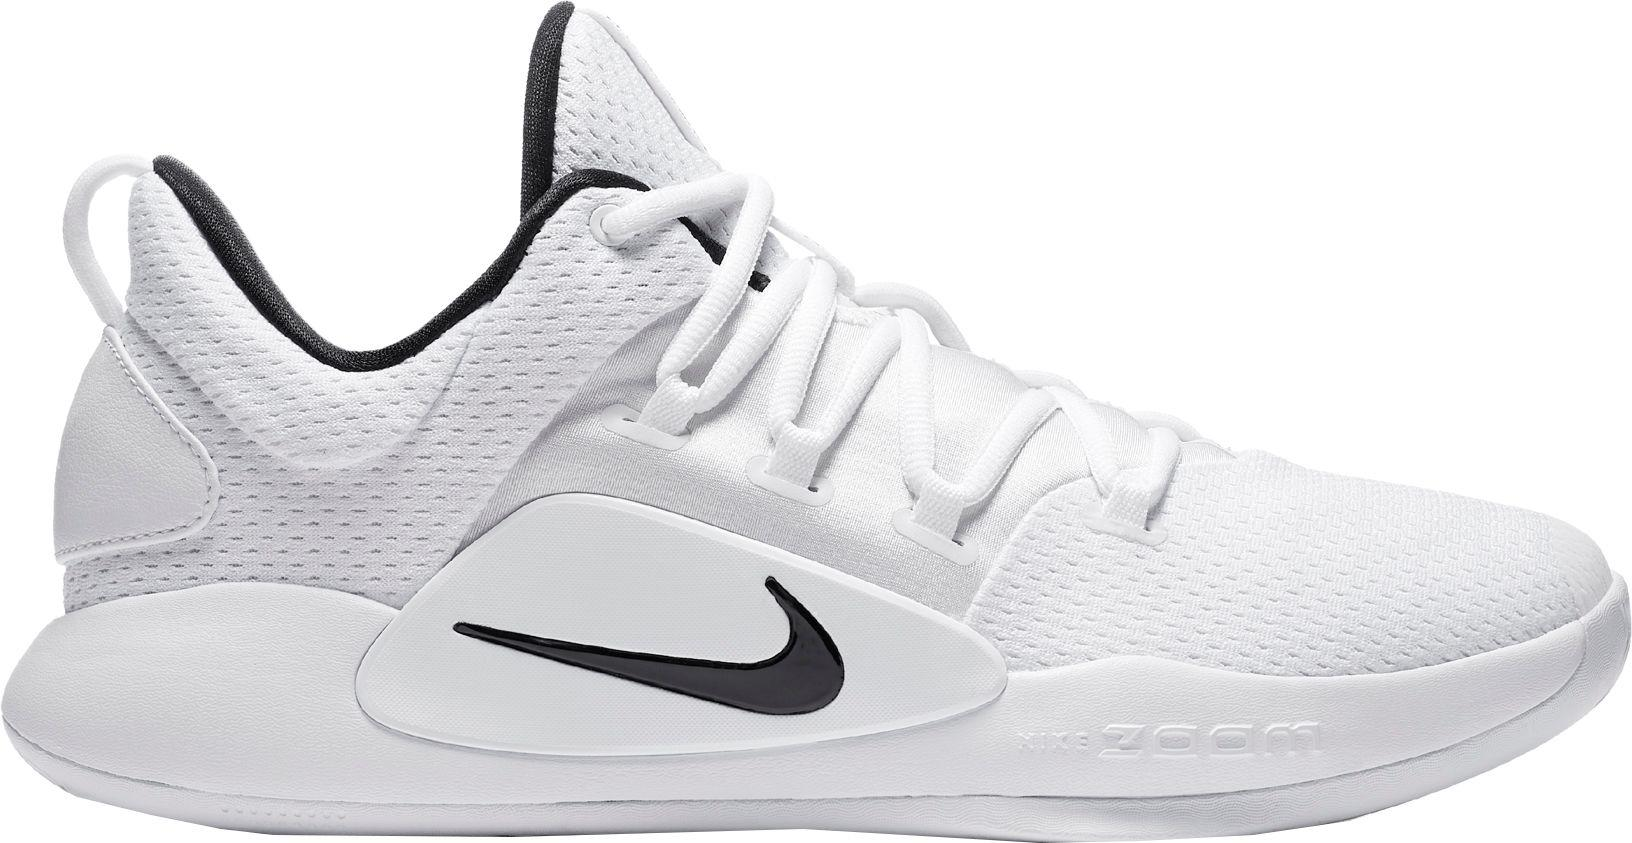 quality design dc43b 7a41f Nike - White Hyperdunk X Low Tb Basketball Shoes for Men - Lyst